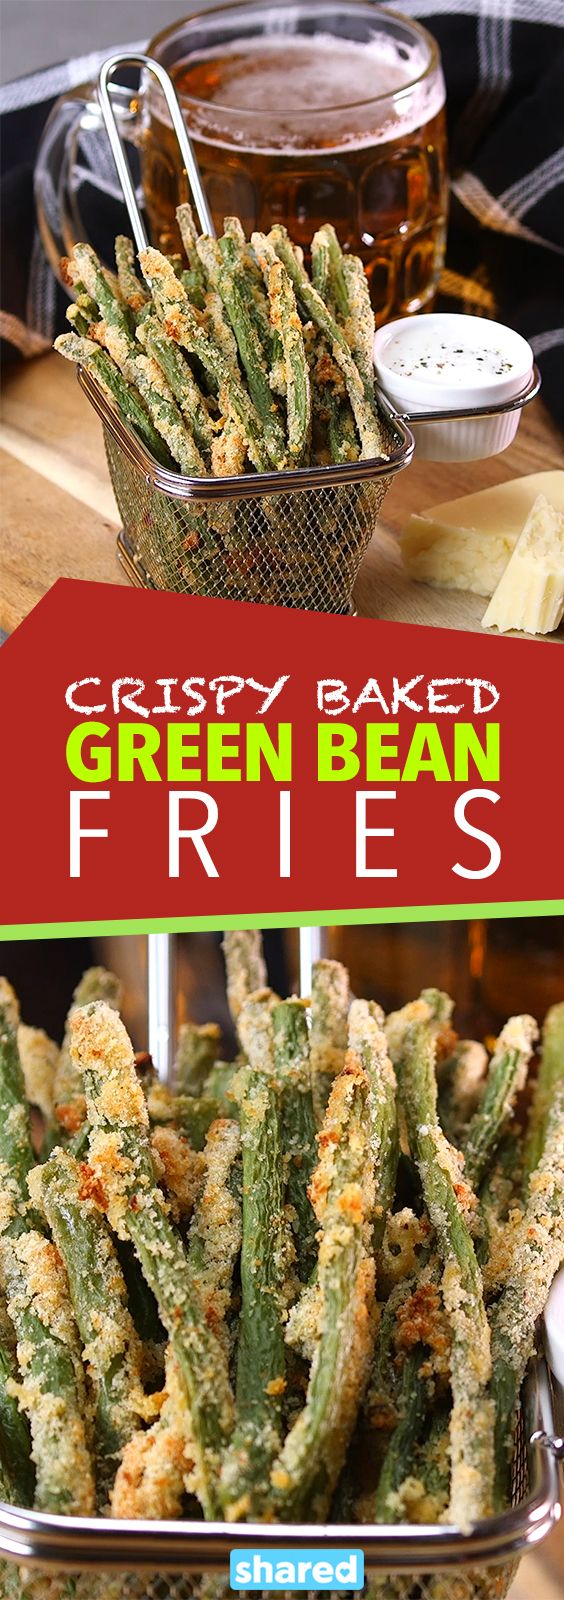 Crispy Baked Green Bean Fries | Food & Drink | Pinterest ...